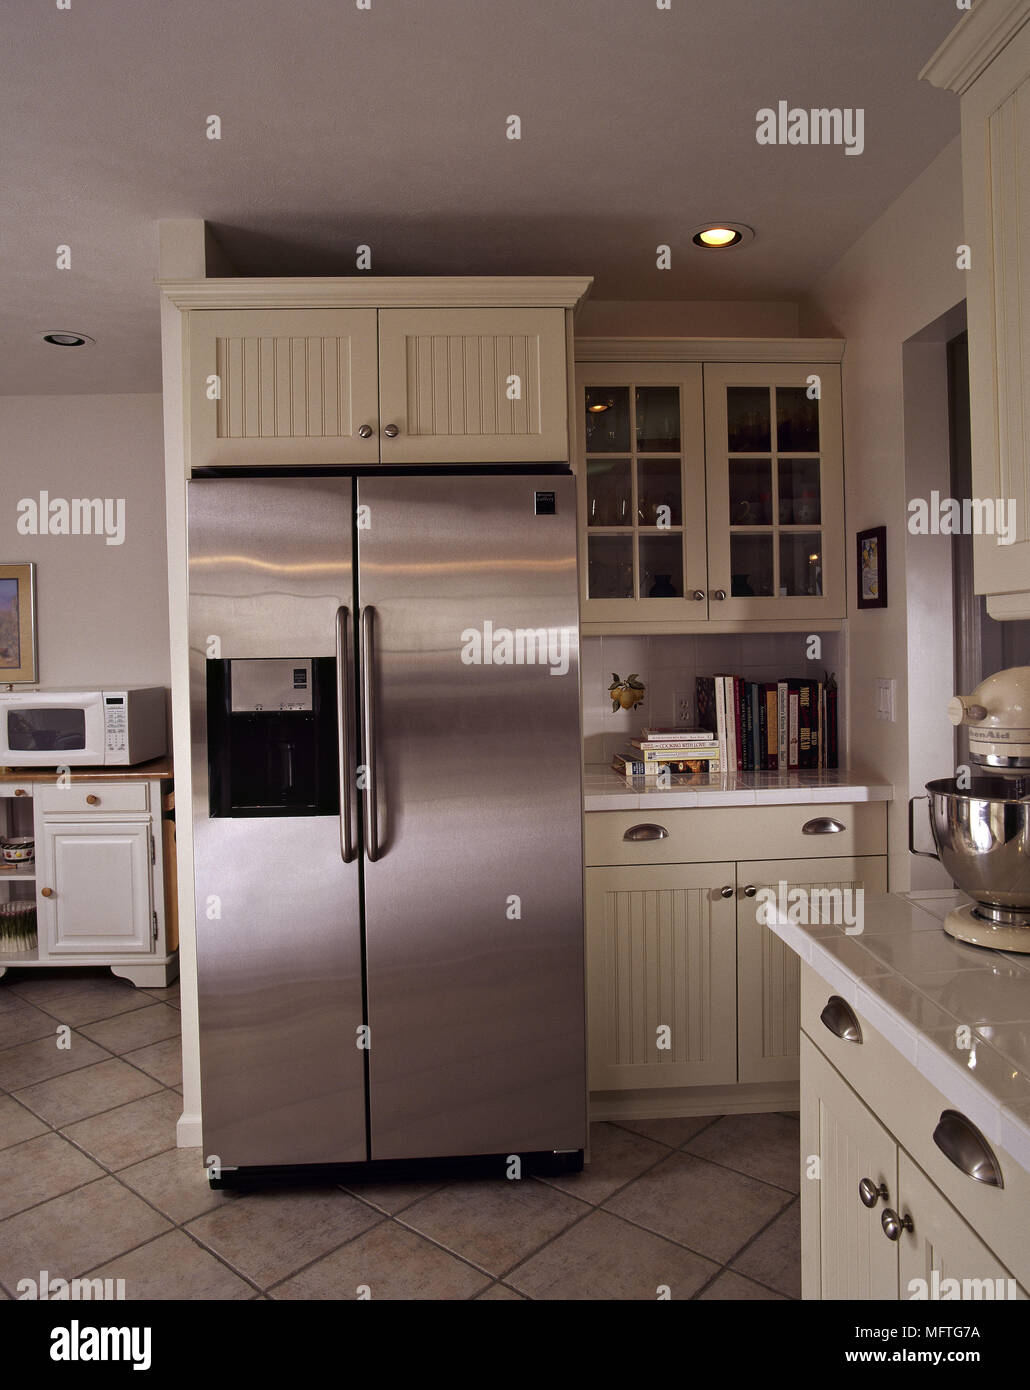 Modern kitchen cream units stainless steel fridge interiors kitchens ...